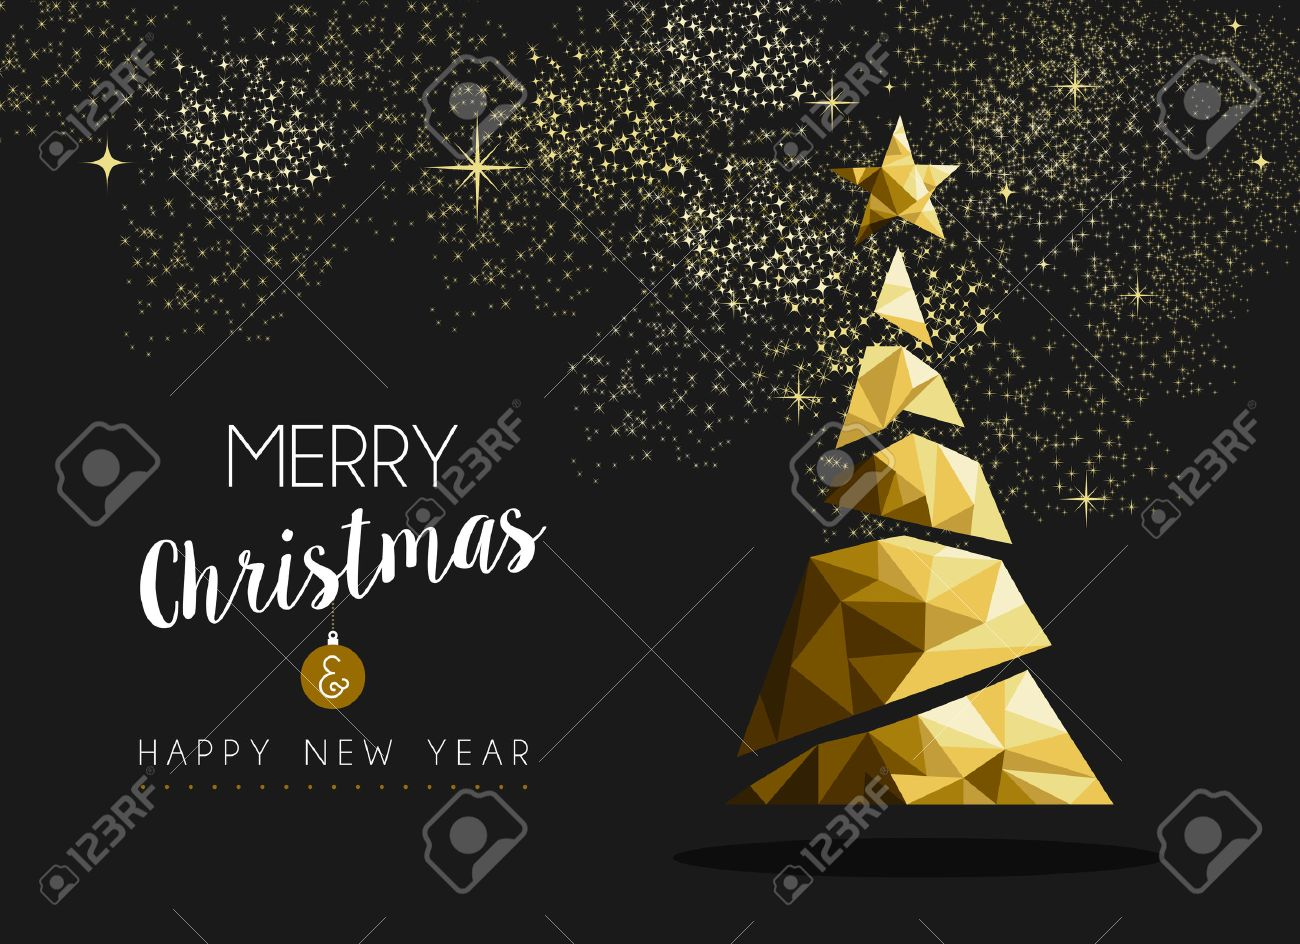 merry christmas and happy new year fancy gold xmas tree in hipster merry christmas and happy new year fancy gold xmas tree in hipster low poly triangle style